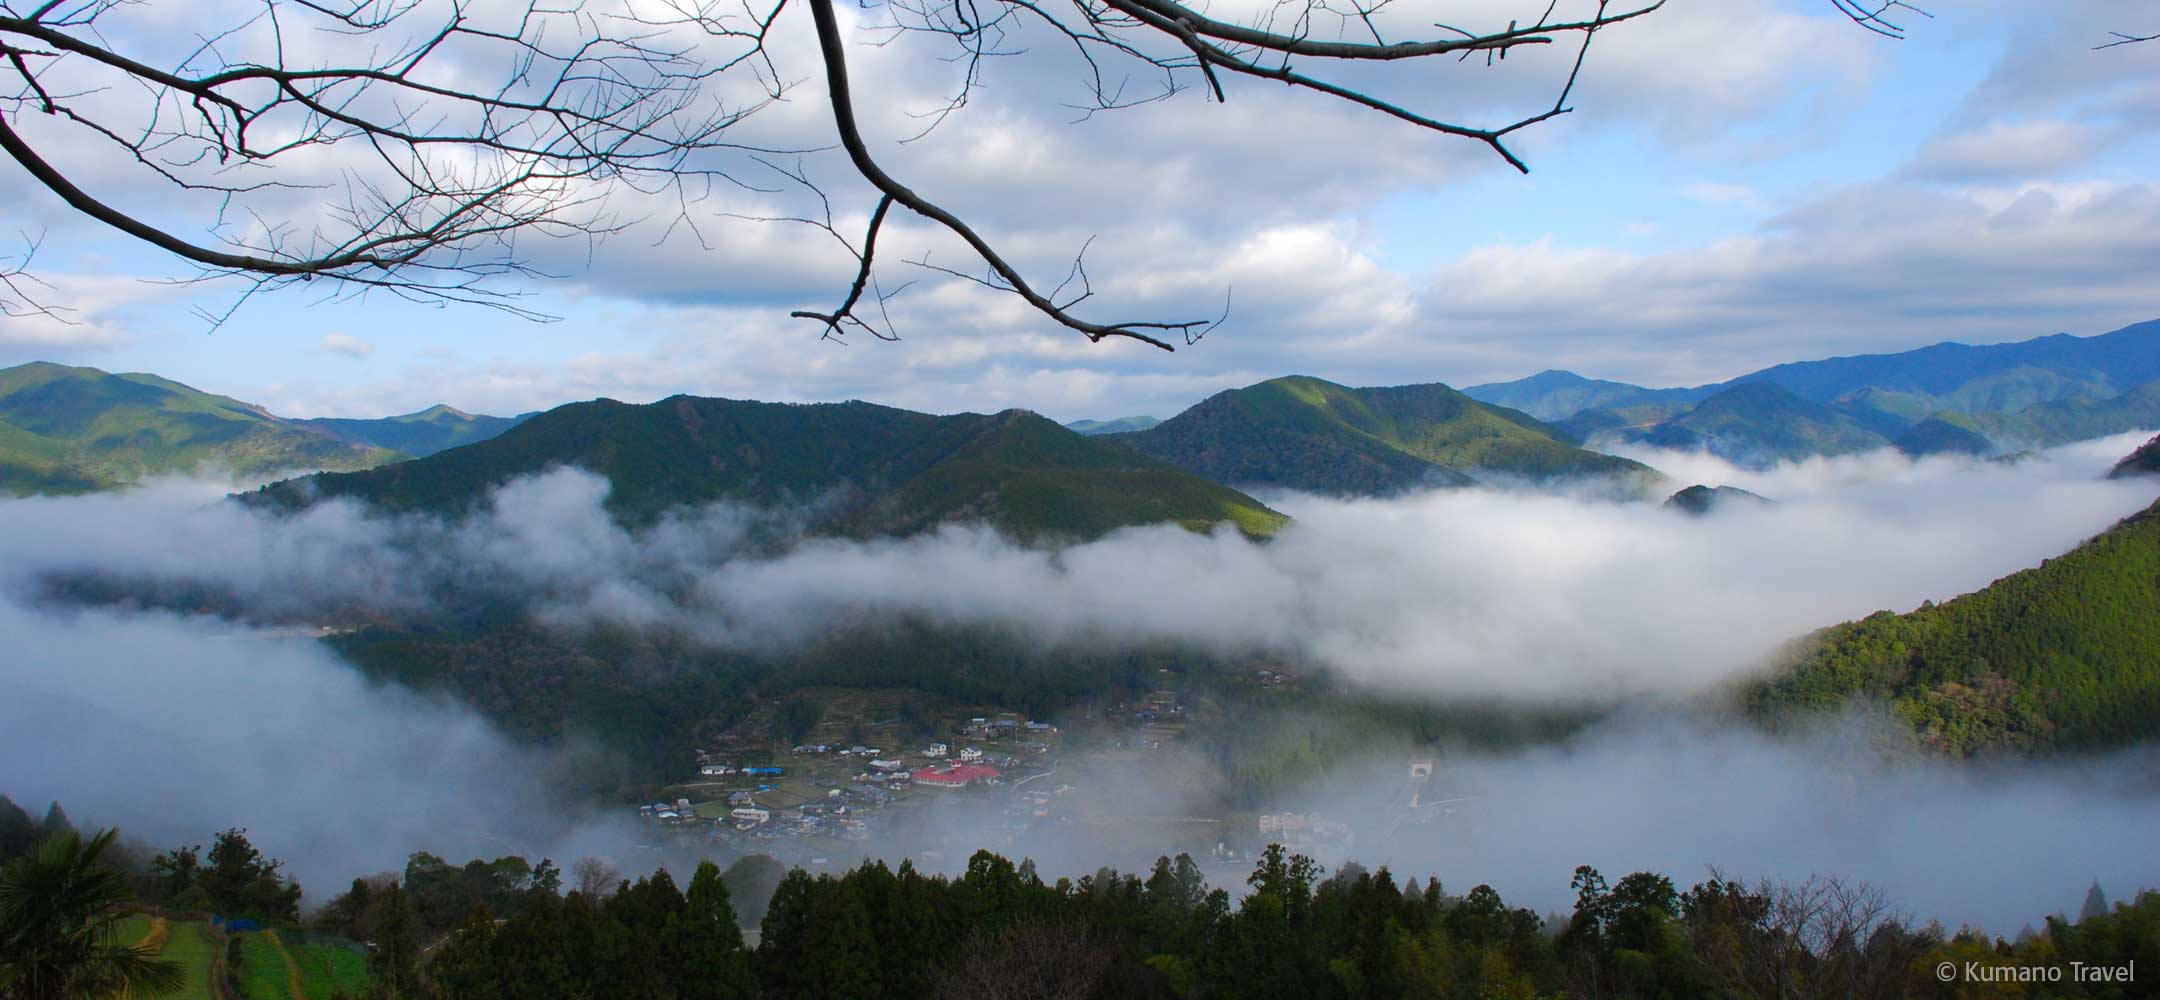 Kumano Kodo Five-Night Module (Advanced Hiking)